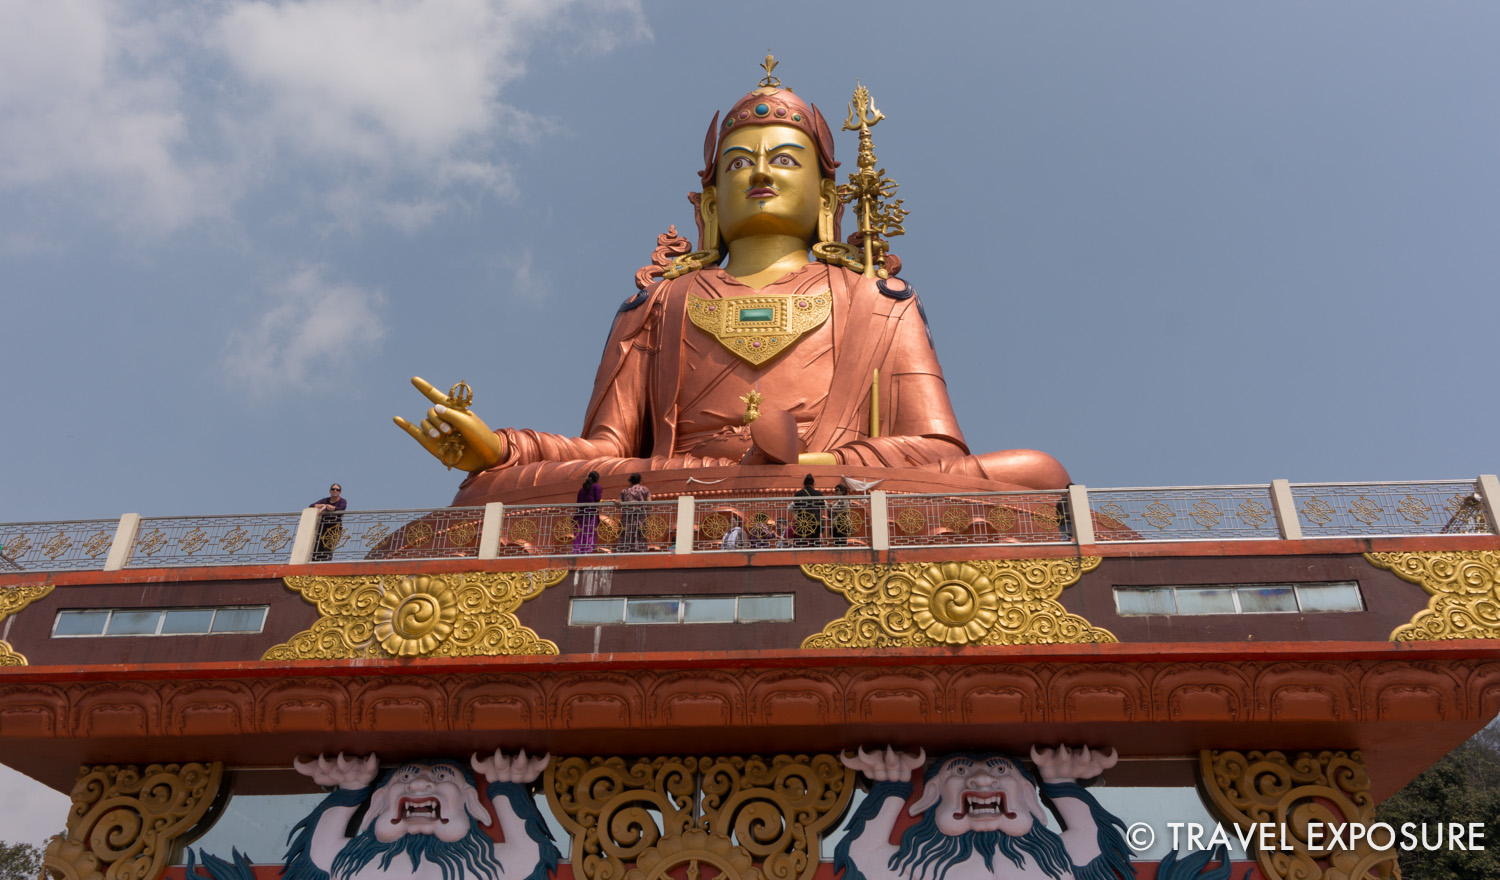 Statue of Guru Rinpoche, the patron saint of Sikkim at Samdruptse Temple